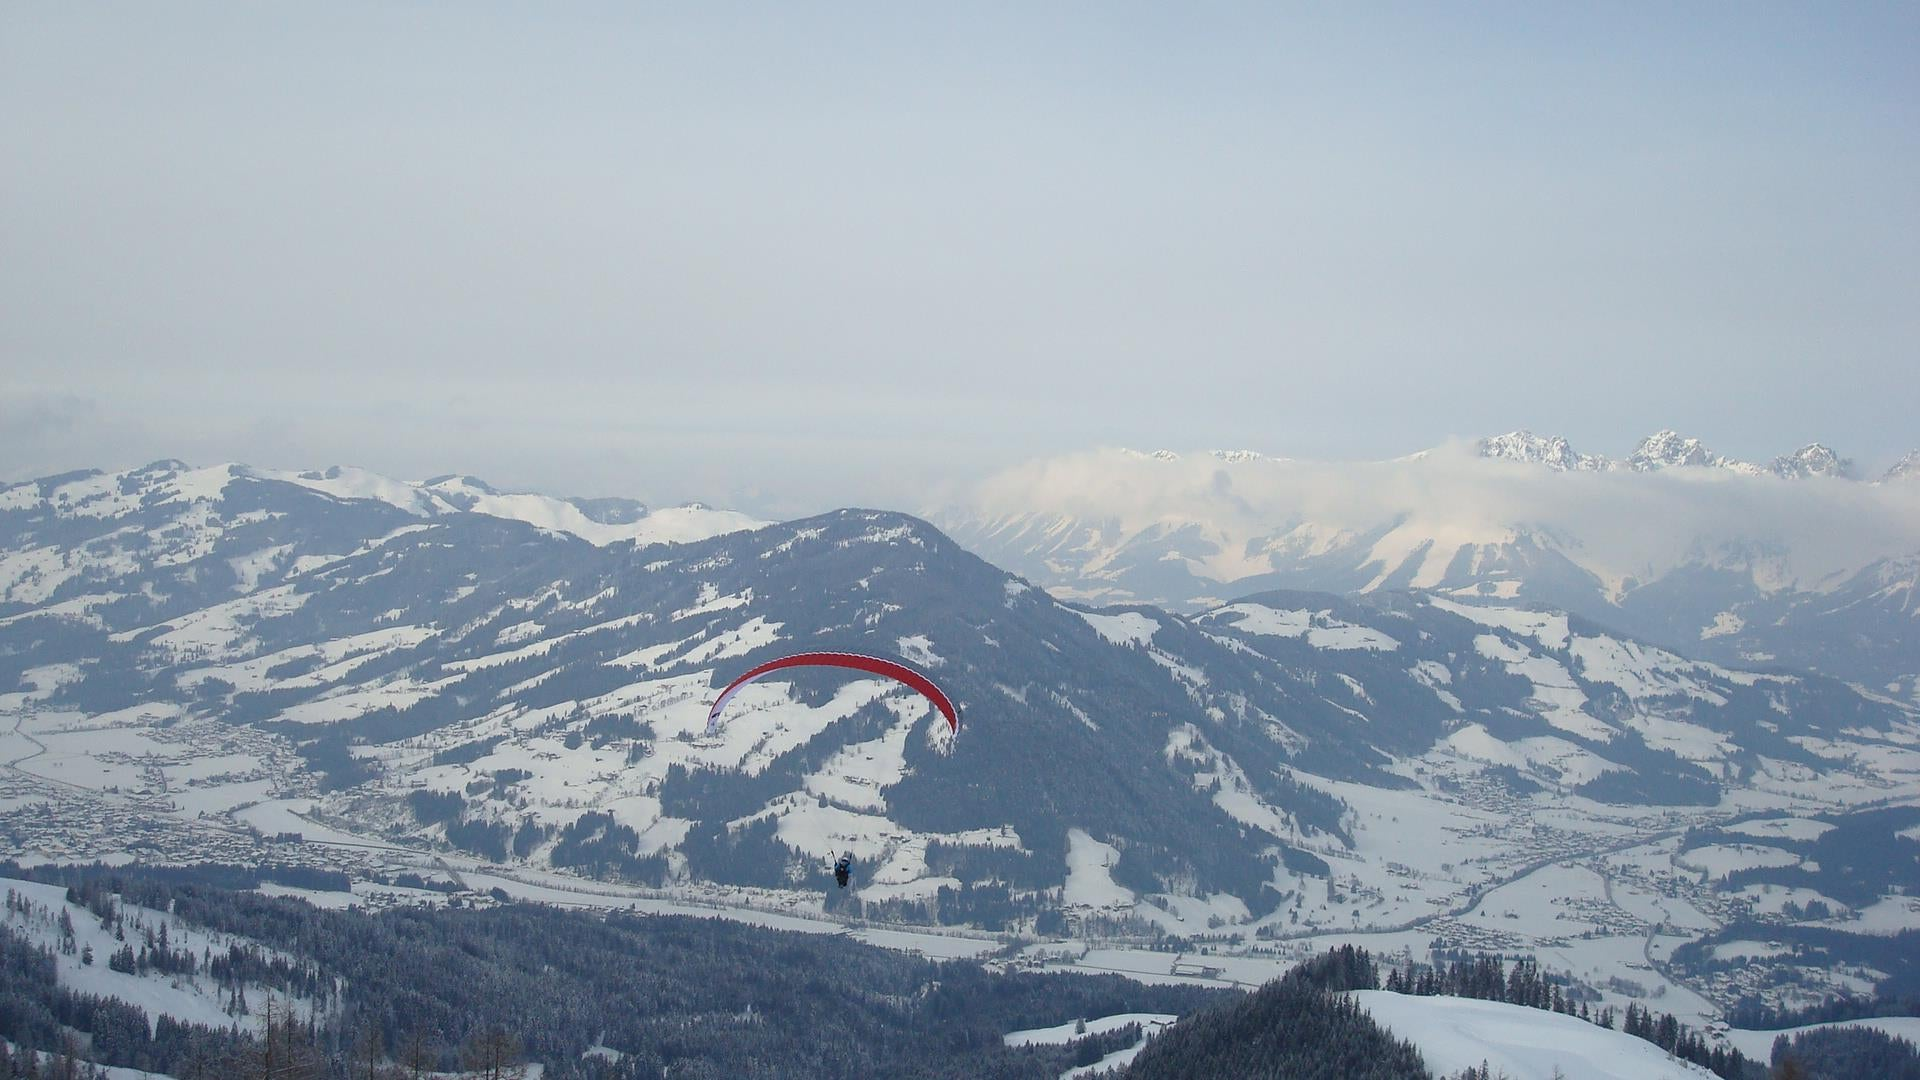 Kitzbuhel snowy mountains